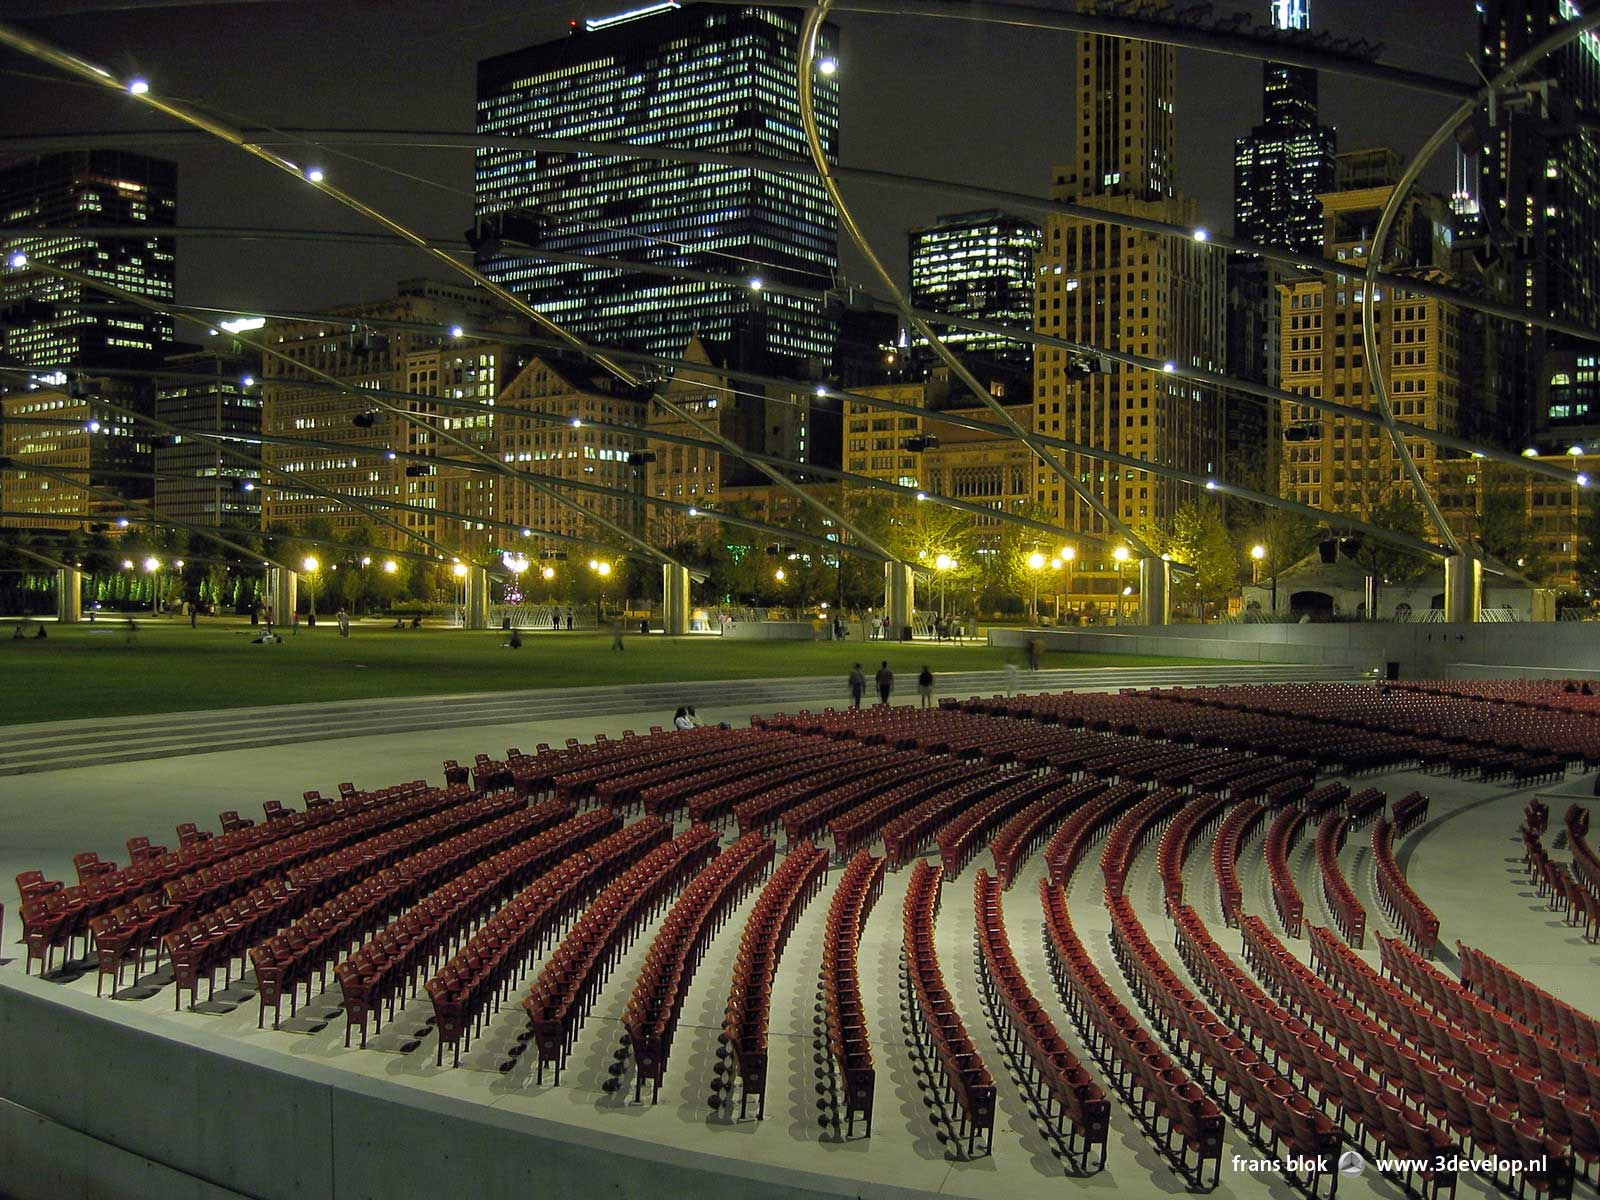 Open air theatre by Frank Gehry in Millennium Park, Chicago.